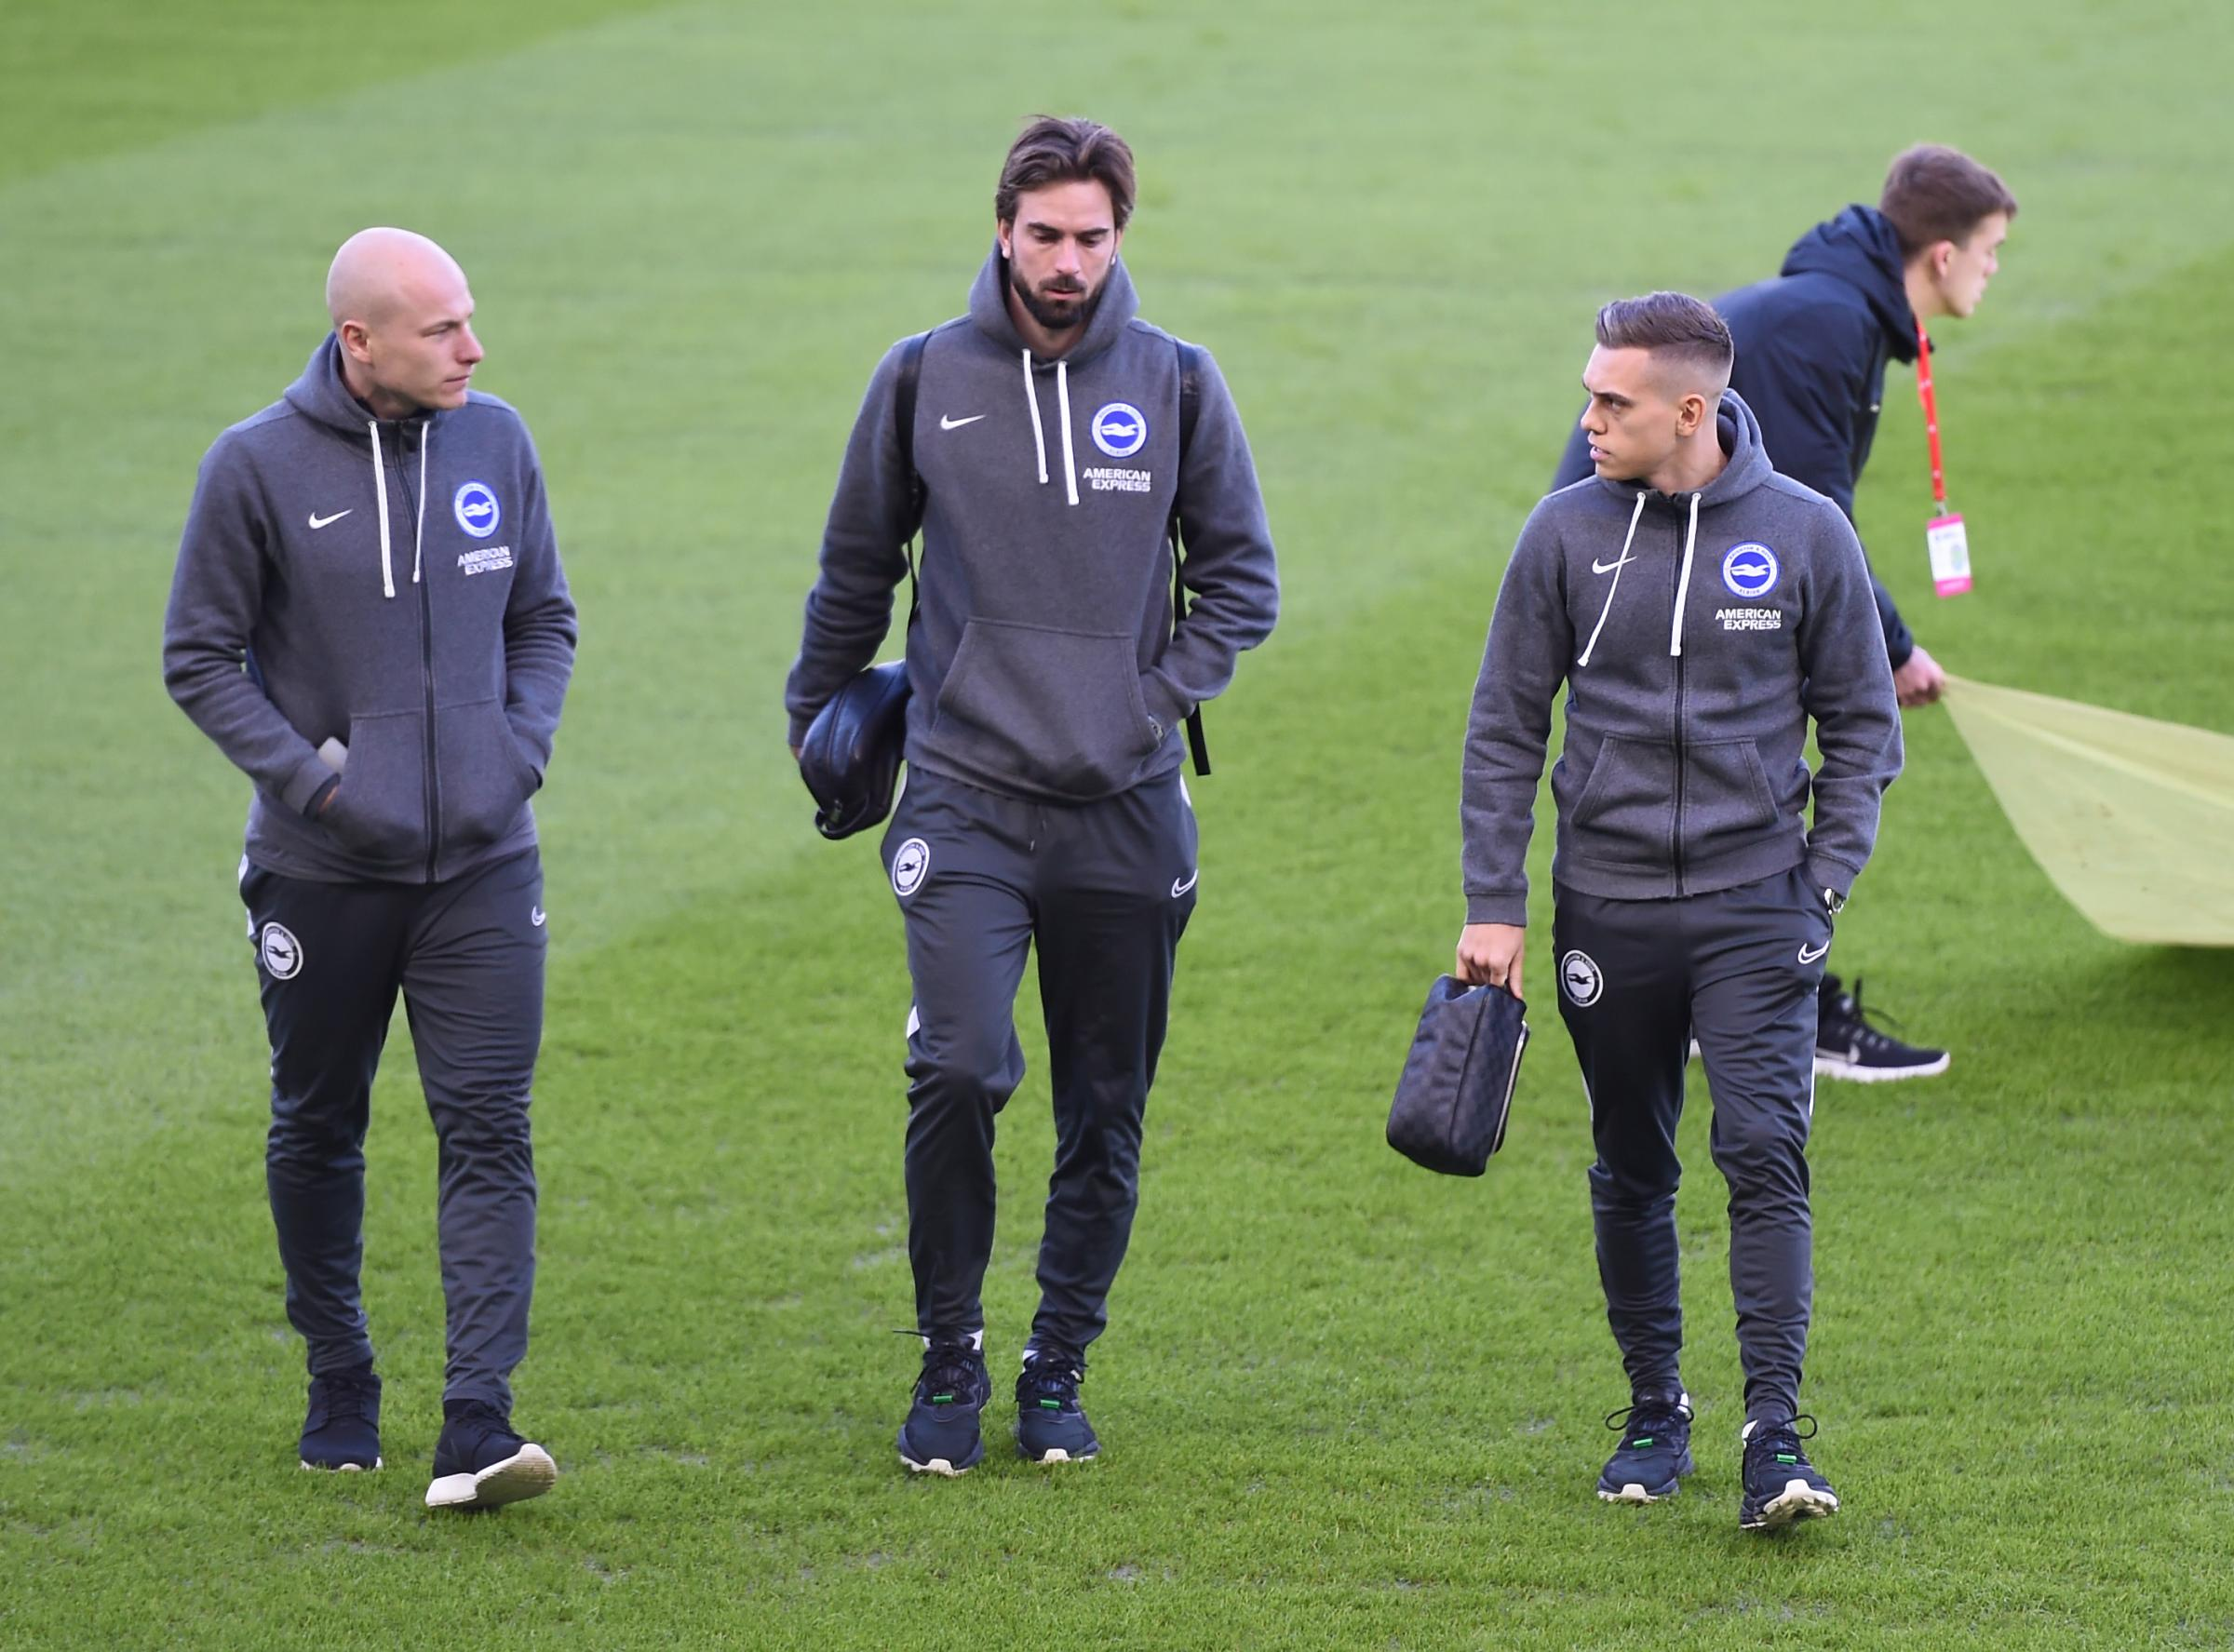 Follow Albion at the Amex against Aston Villa: Mooy, Connolly and Alzate start